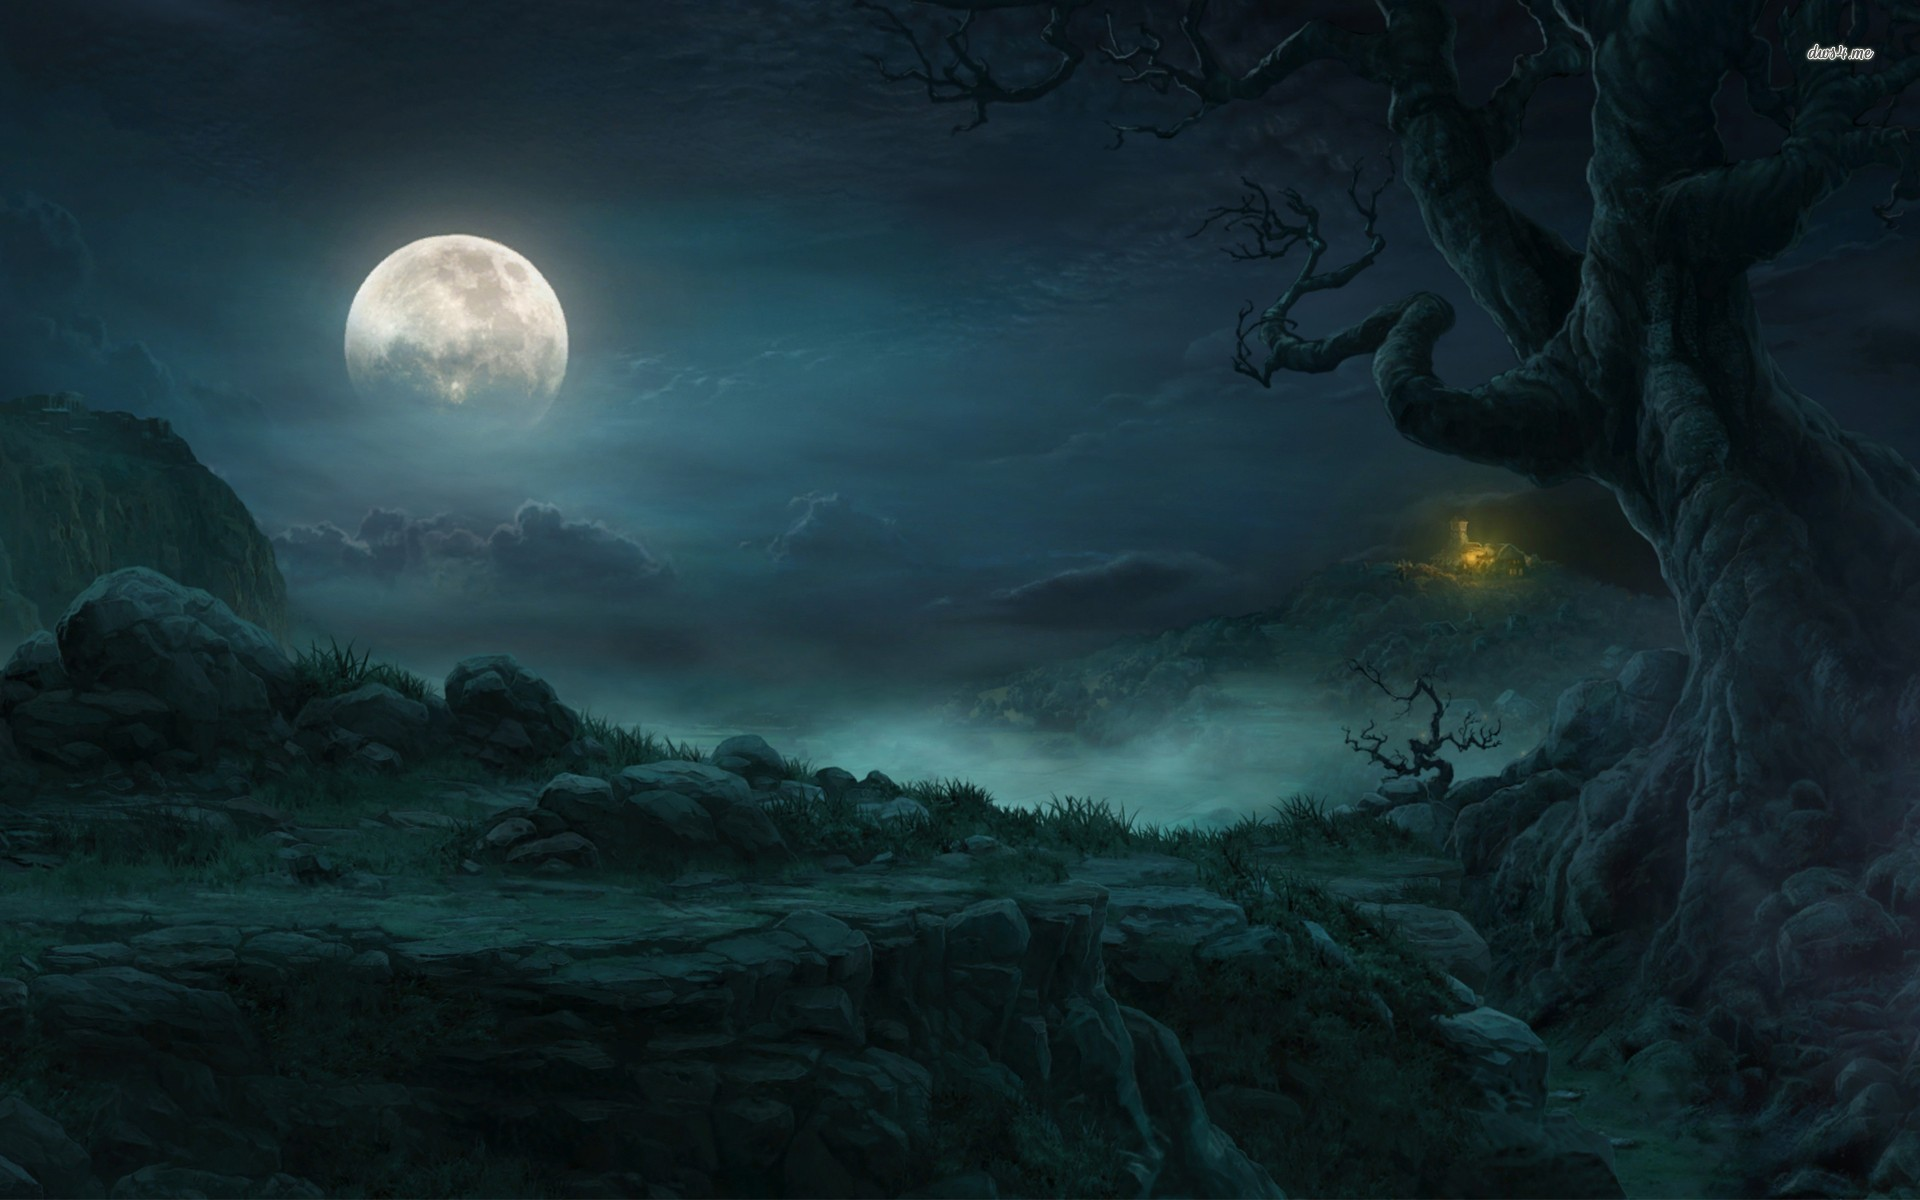 Image – 13038-full-moon-in-the-forest-1920×1200-fantasy-wallpaper.jpg.2b4117be5352ca9046bcaff824ad60d0.jpg  | Animal Jam Clans Wiki | FANDOM powered by Wikia